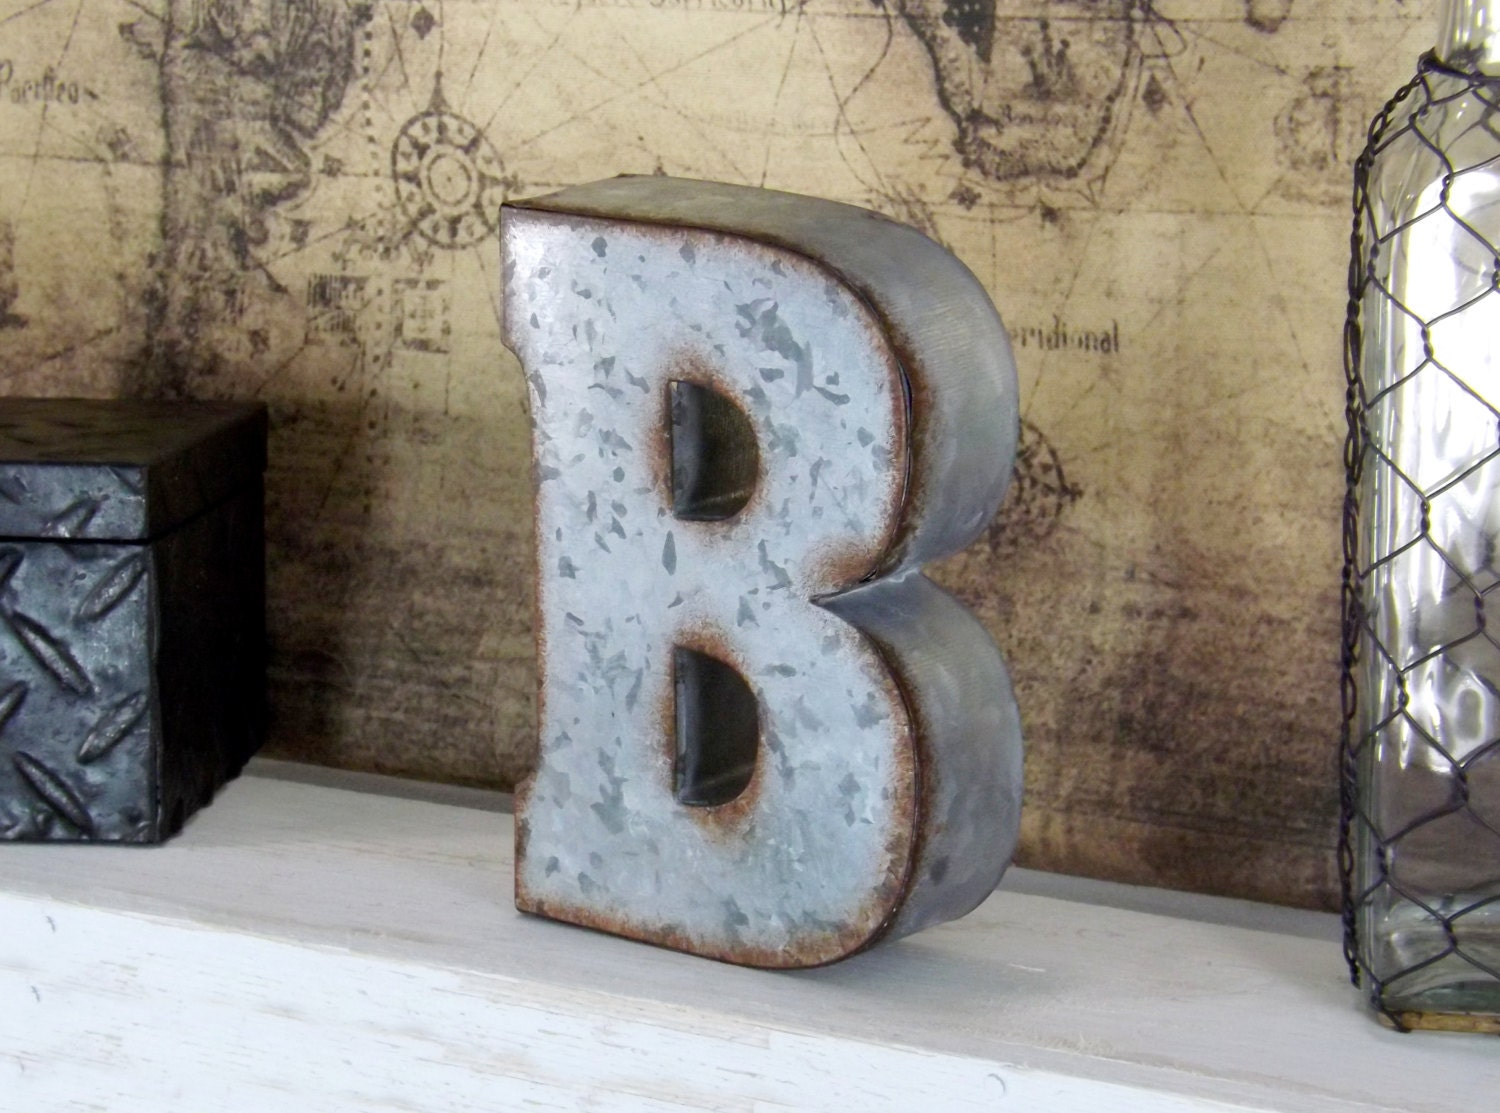 12 Inch Galvanized Letters Metal B Galvanized Letter 7 Inch Letter Shelf Letter Free